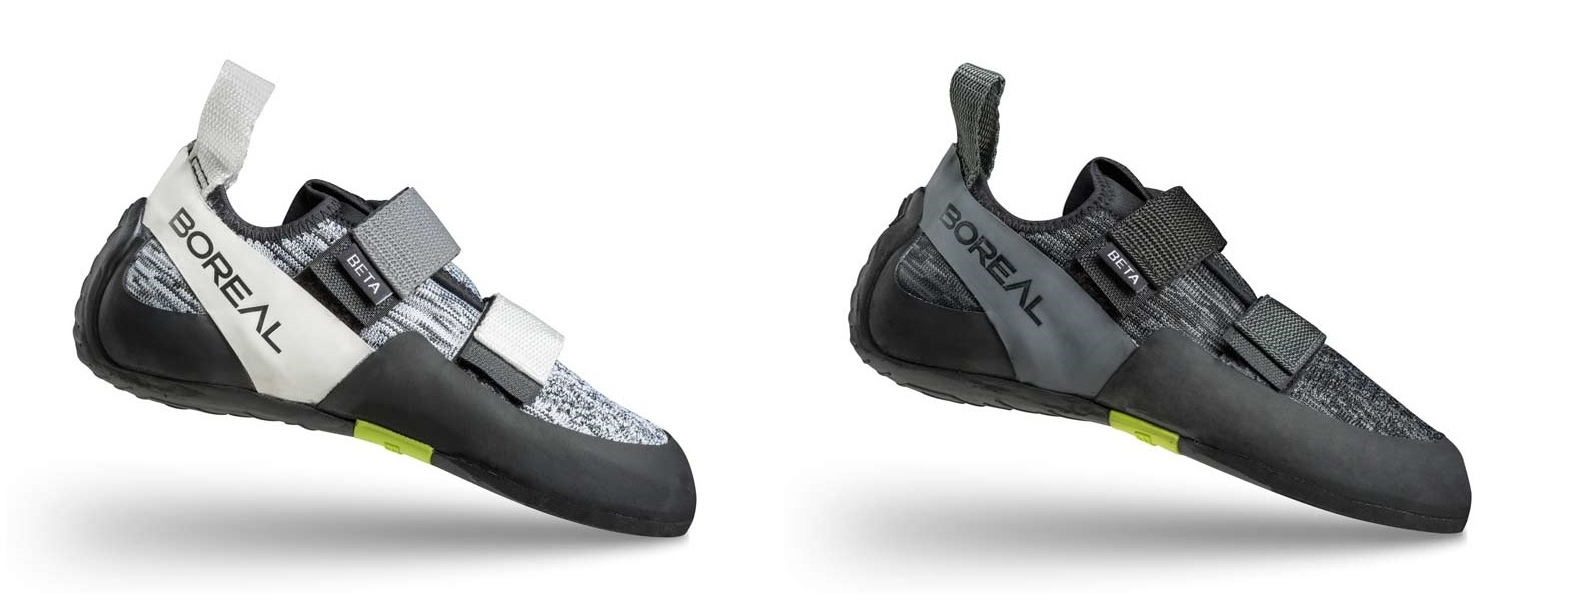 NEW BOREAL ROCK SHOES - IDEAL FOR AT THE CLIMBING WALL